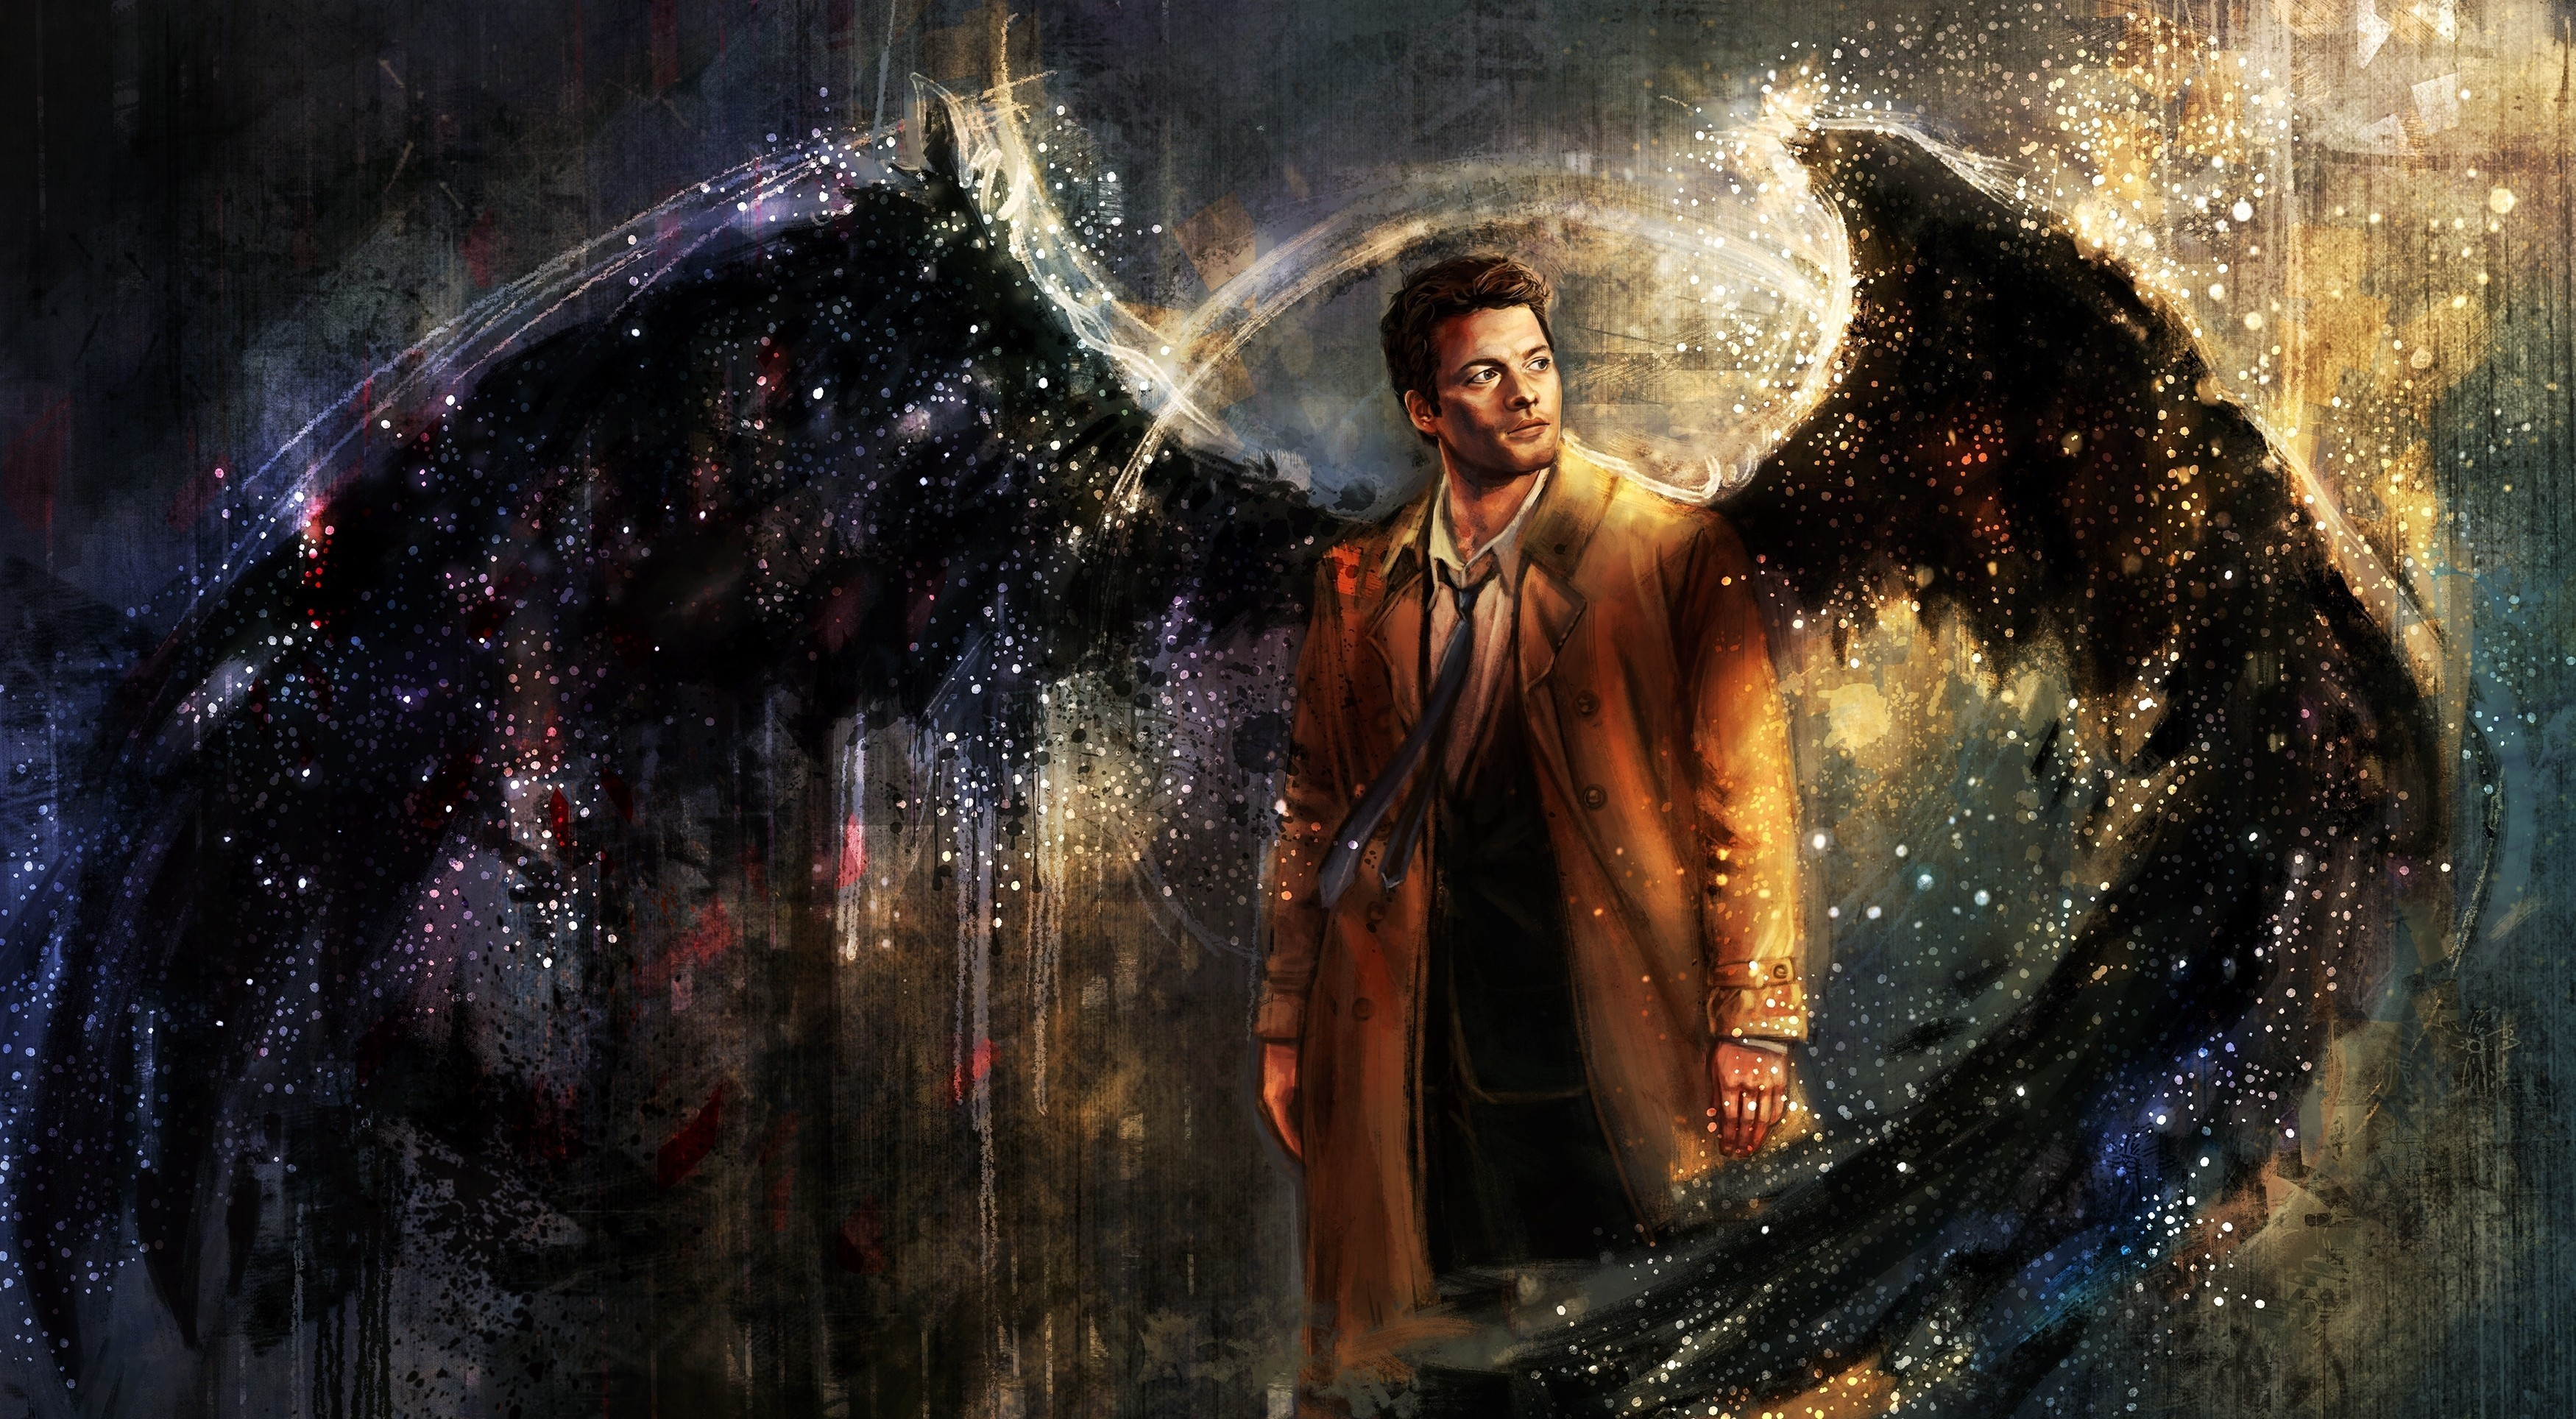 3500x1928  Castiel, Drawing, Supernatural, Artwork, Wings, Painting  Wallpapers HD / Desktop and Mobile Backgrounds